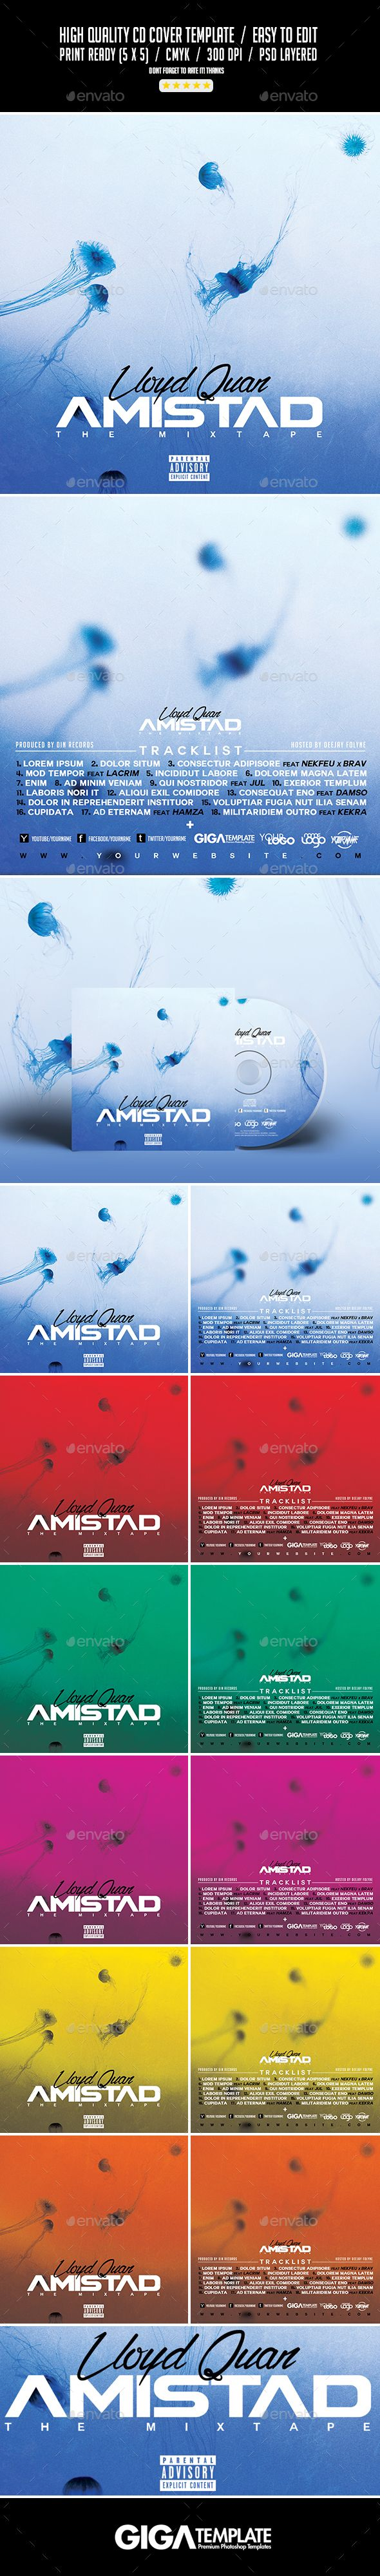 amistad album music mixtape cd cover template fonts logos icons